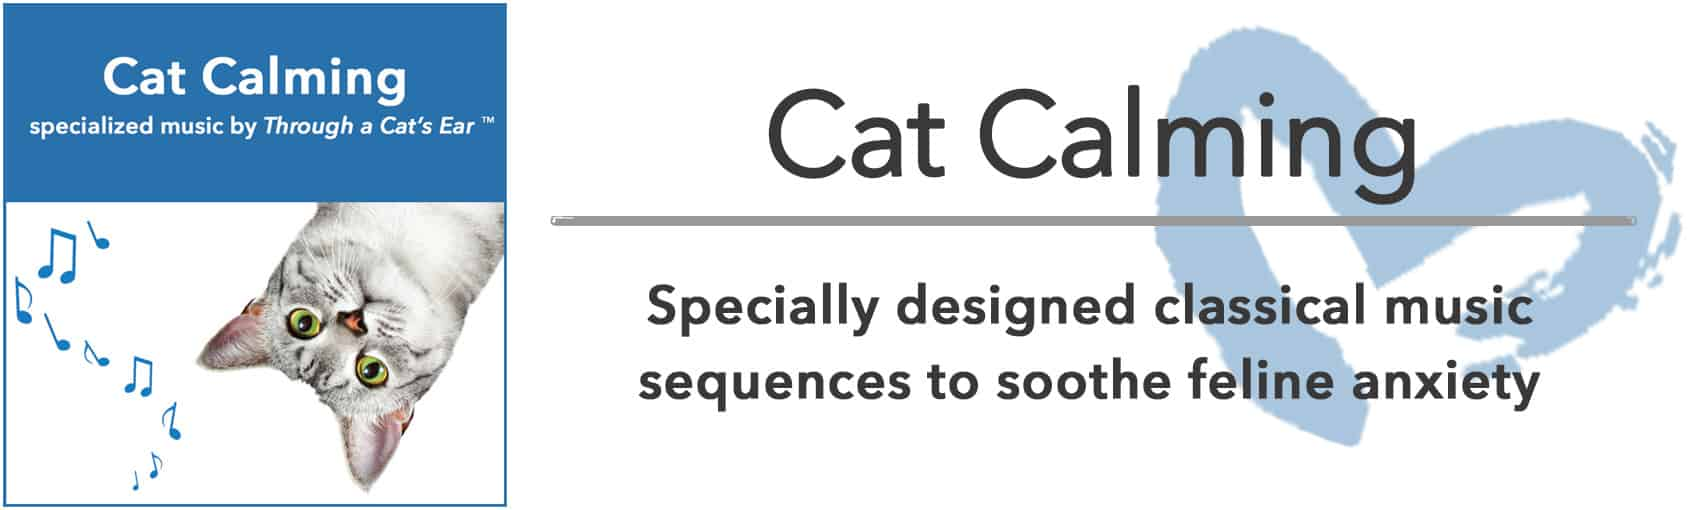 Cat calming music specially designed sequences to soothe feline anxiety